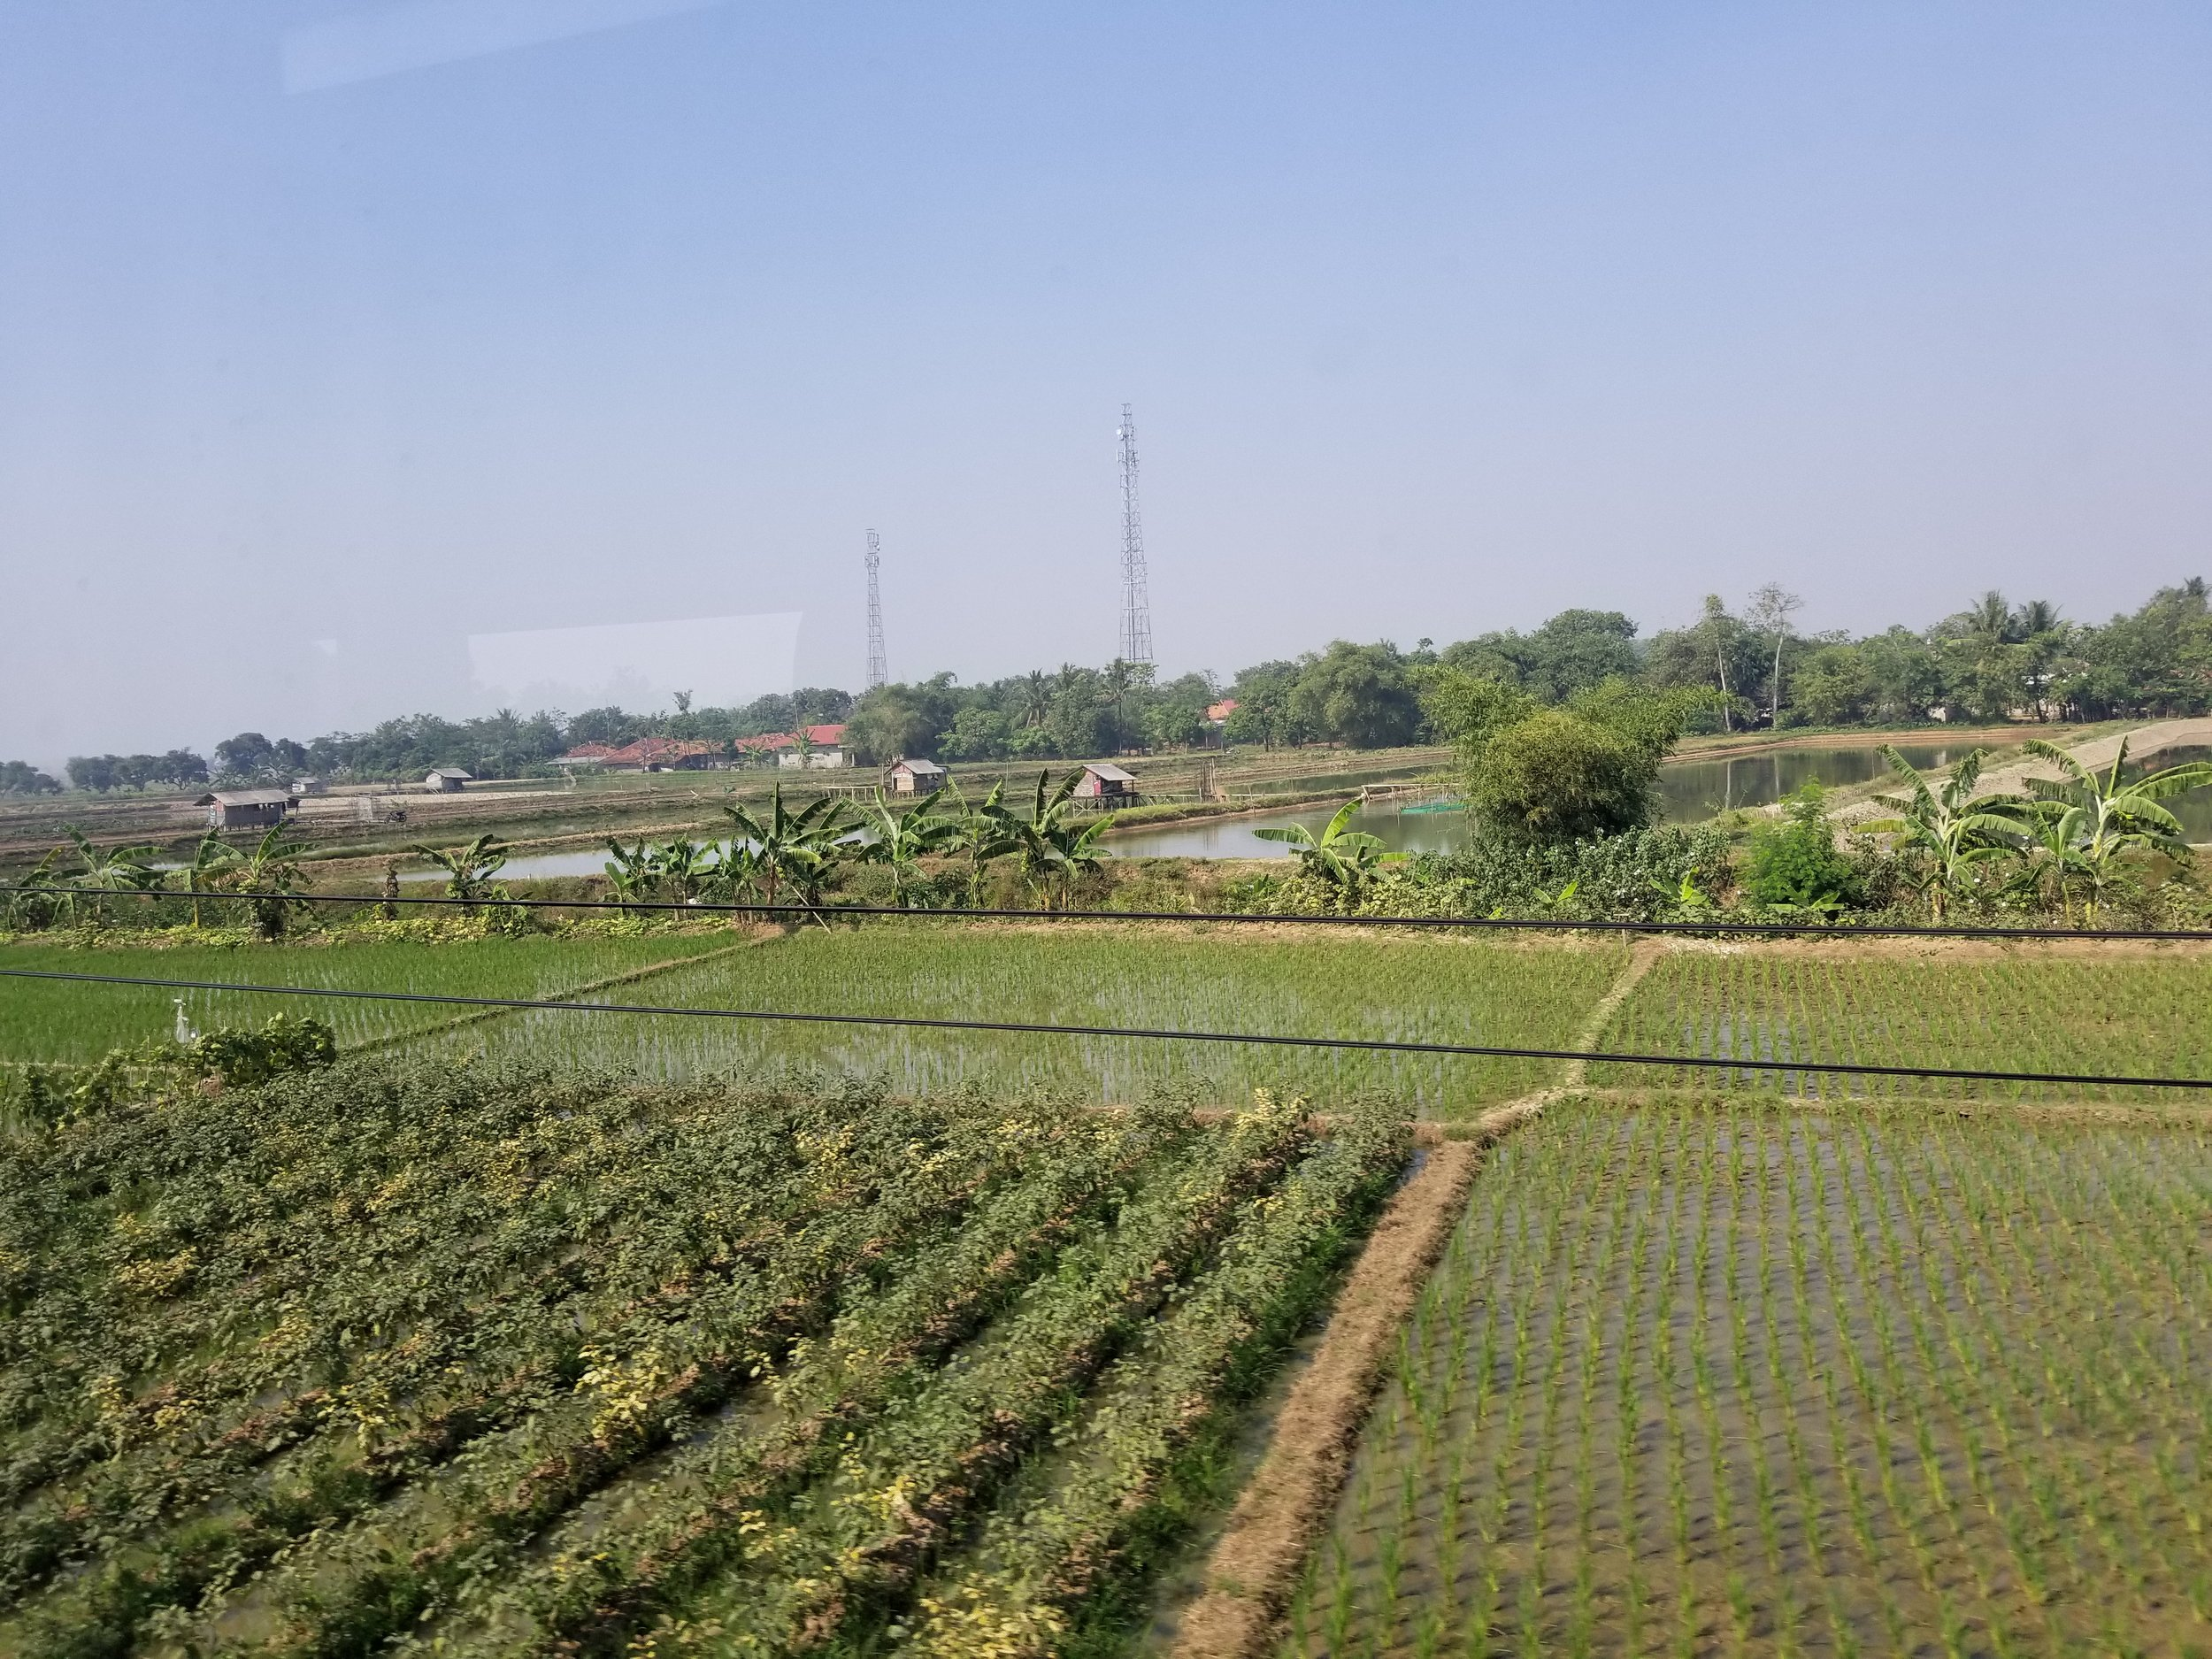 We saw rice field after rice field ....